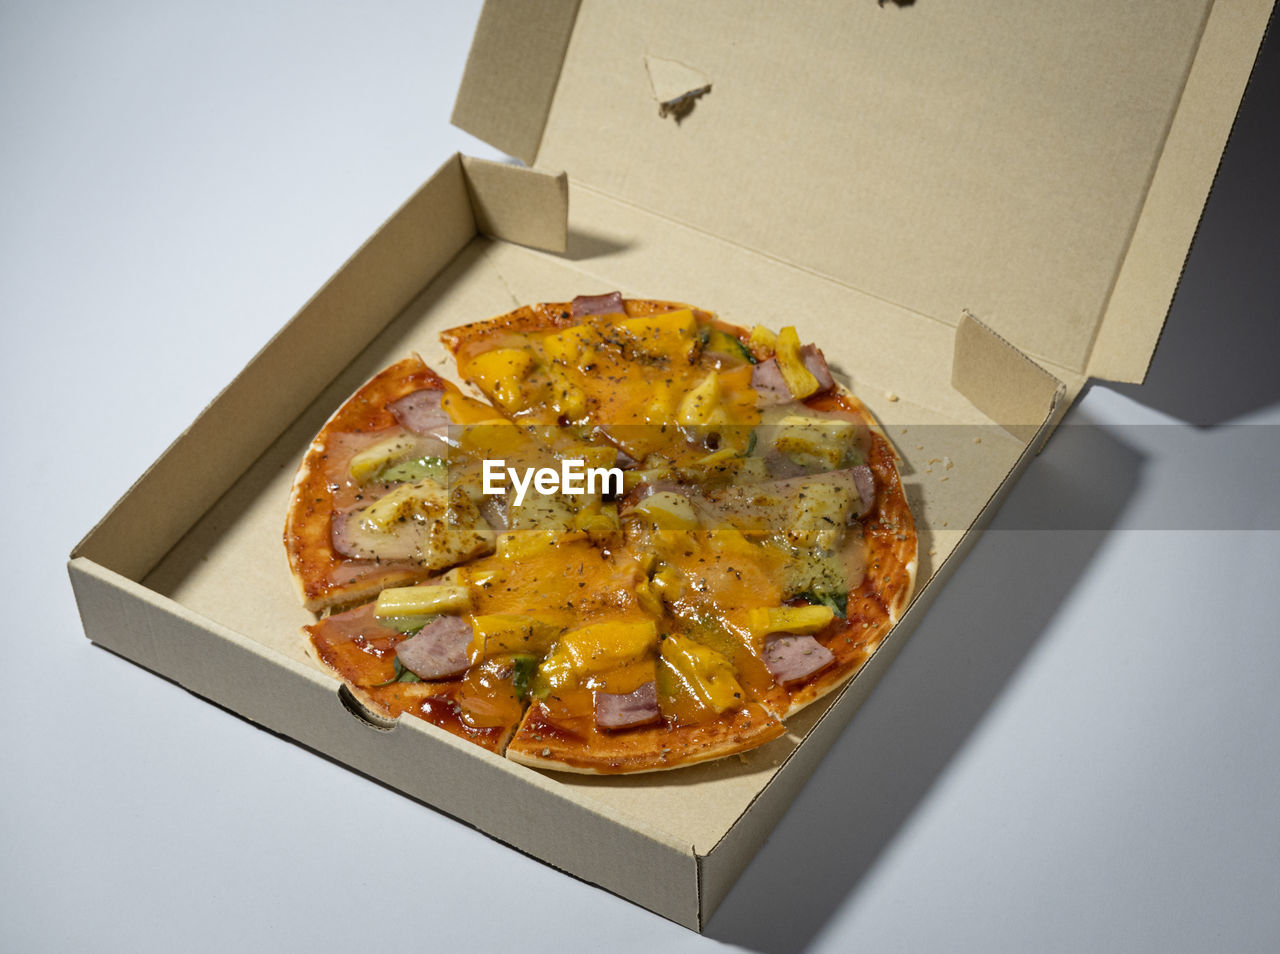 HIGH ANGLE VIEW OF PIZZA IN CONTAINER